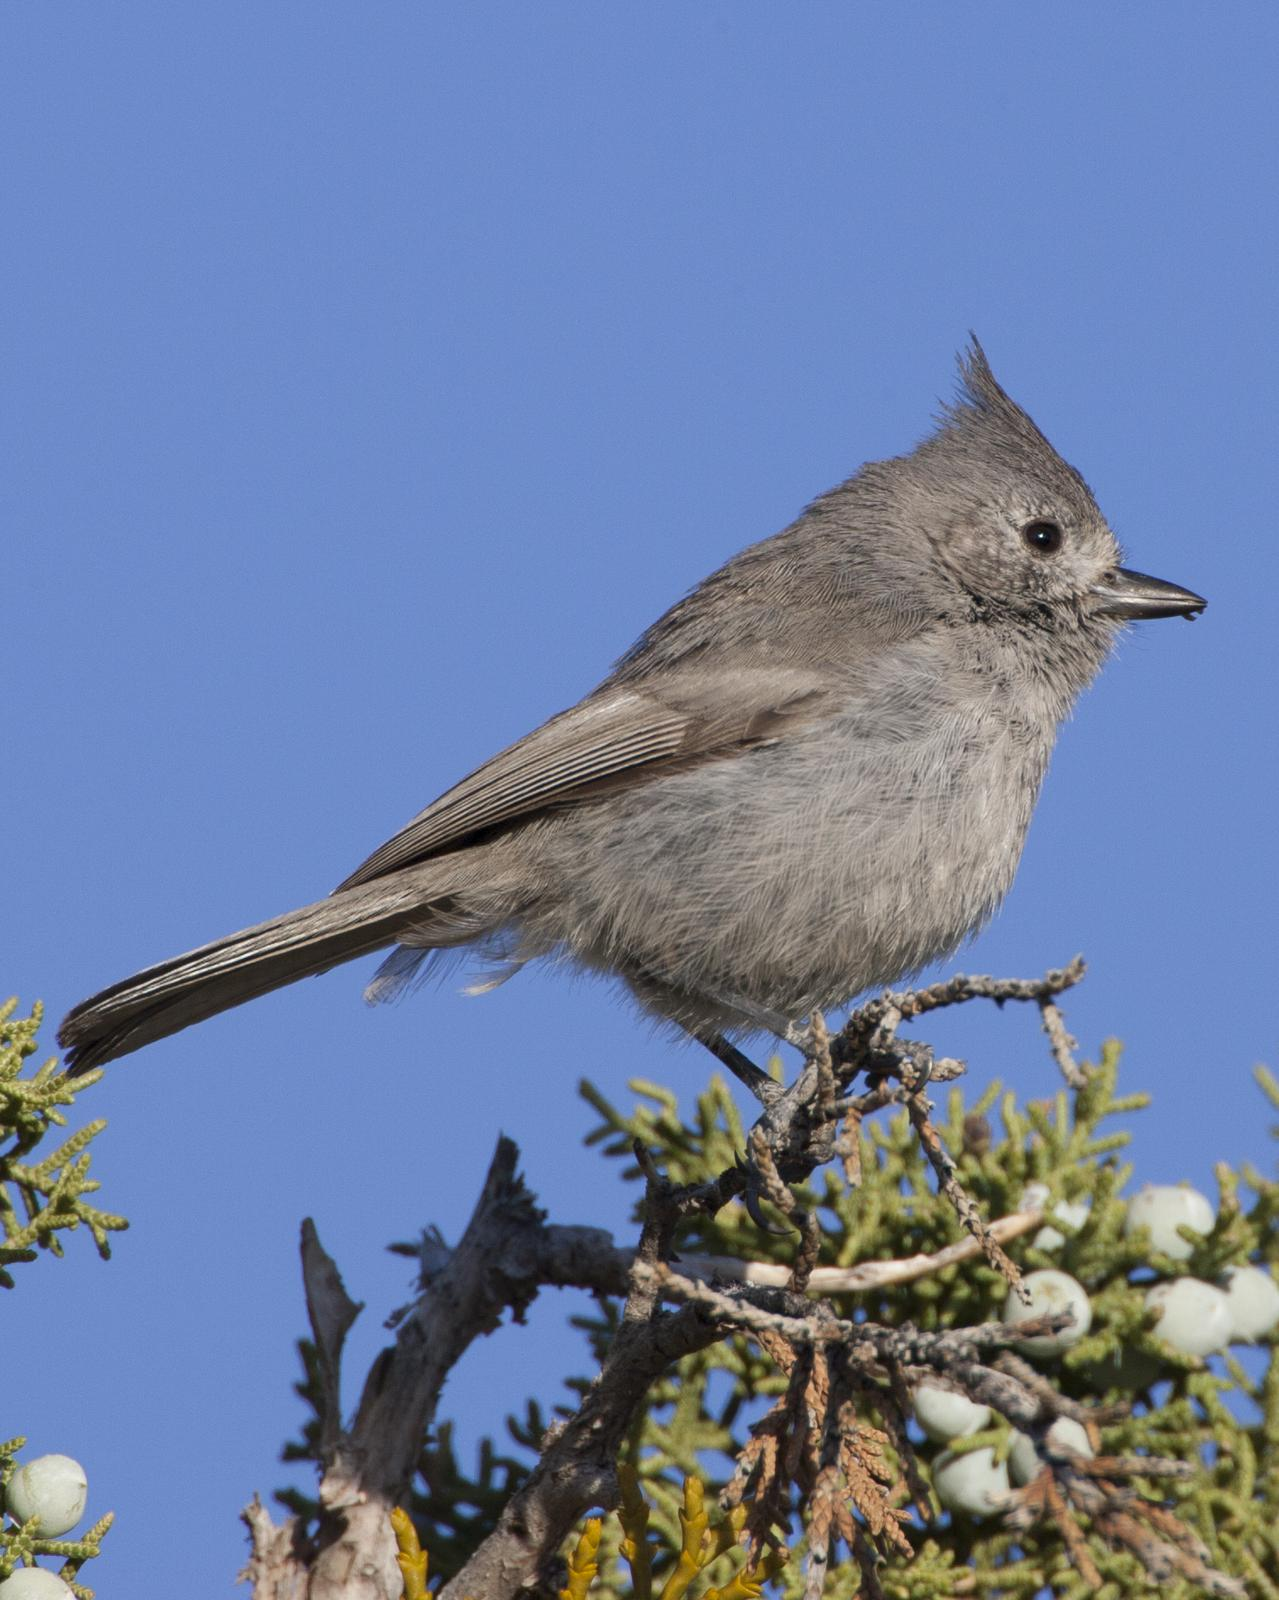 Juniper Titmouse Photo by Jeff Moore